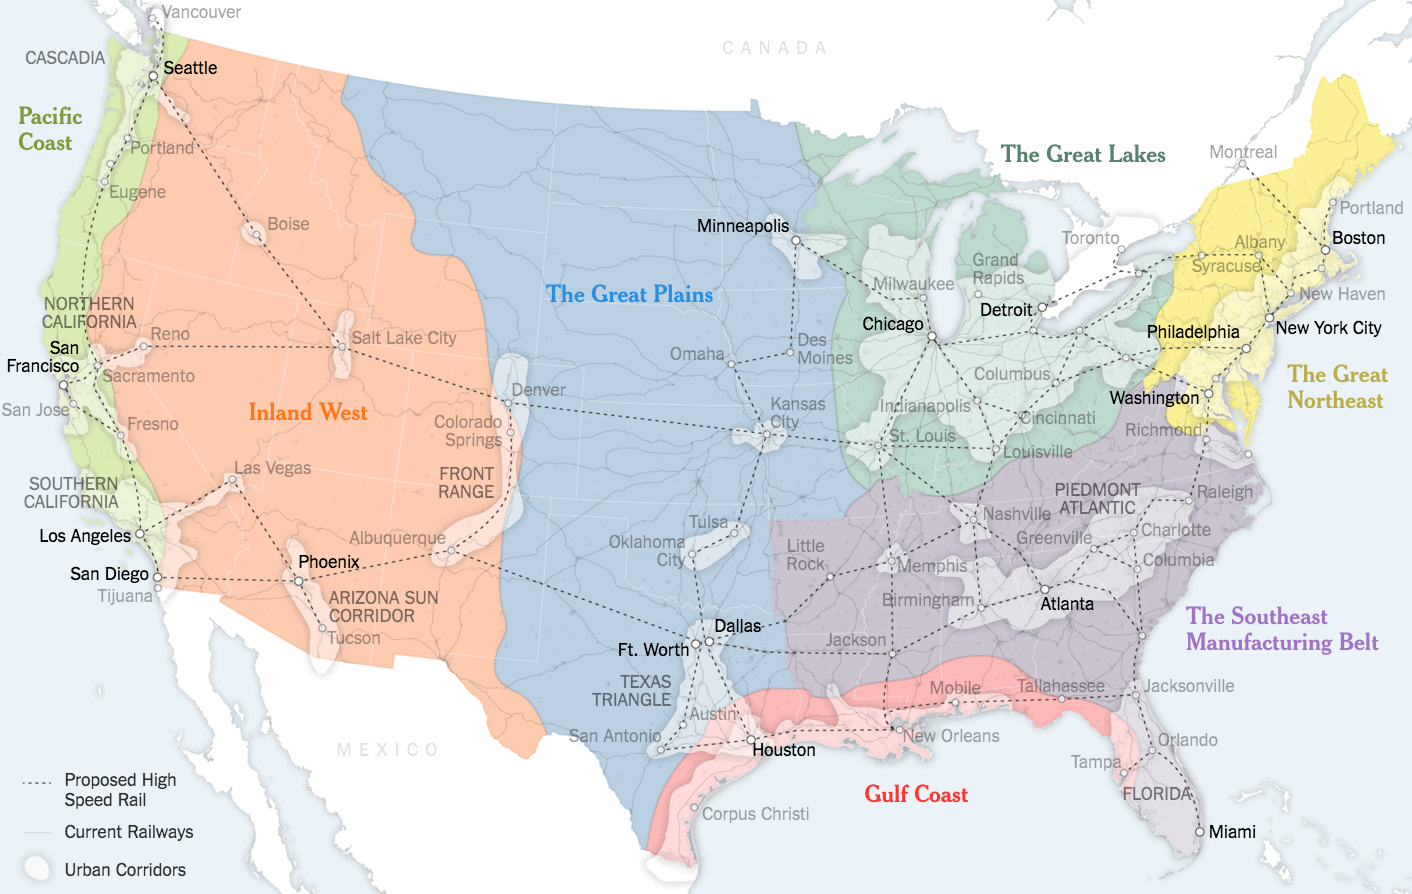 How the lower 48 states could be realigned into seven mega-regions (larger).Credit Sources: Joel Kotki (boundaries and names of 7 mega-regions); Forbes Magazin; Regional Plan Association; Census Bureau; nited State High Speed Rail Association; Clare Trainor/University of Wisconsin-Madison Cartography Laboratory.